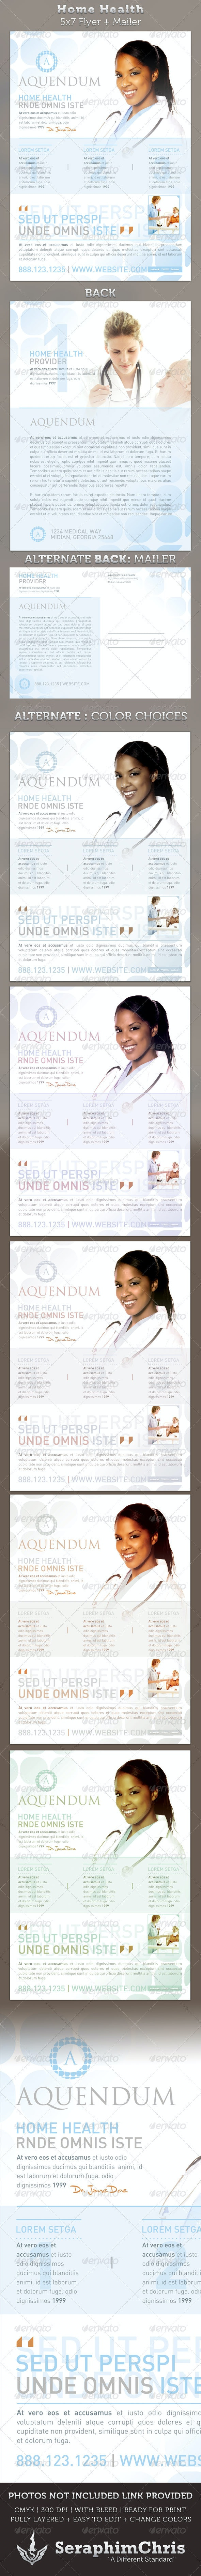 Home Health 5x7 Medical Healthcare Flyer & Mailer - Corporate Flyers